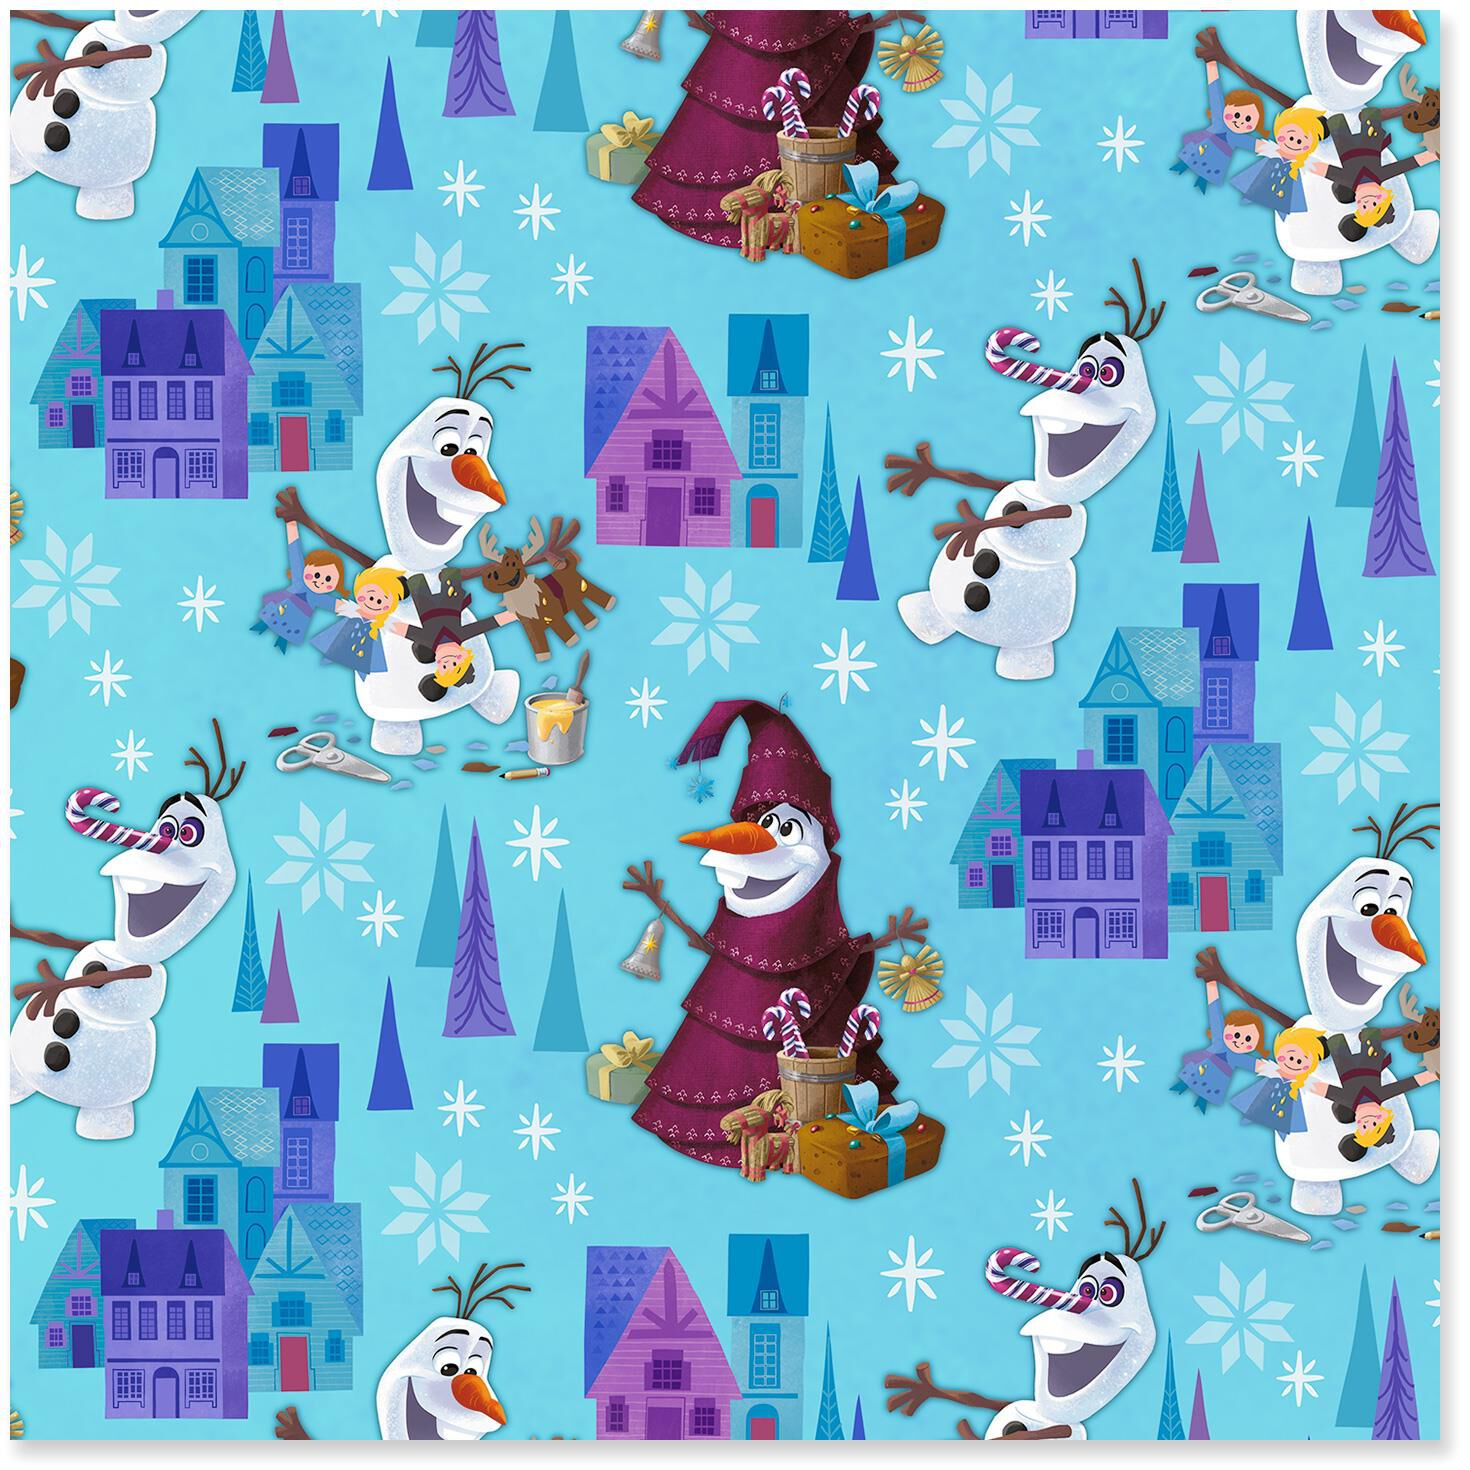 disney olafs frozen adventure jumbo christmas wrapping paper roll 80 sq ft wrapping paper hallmark